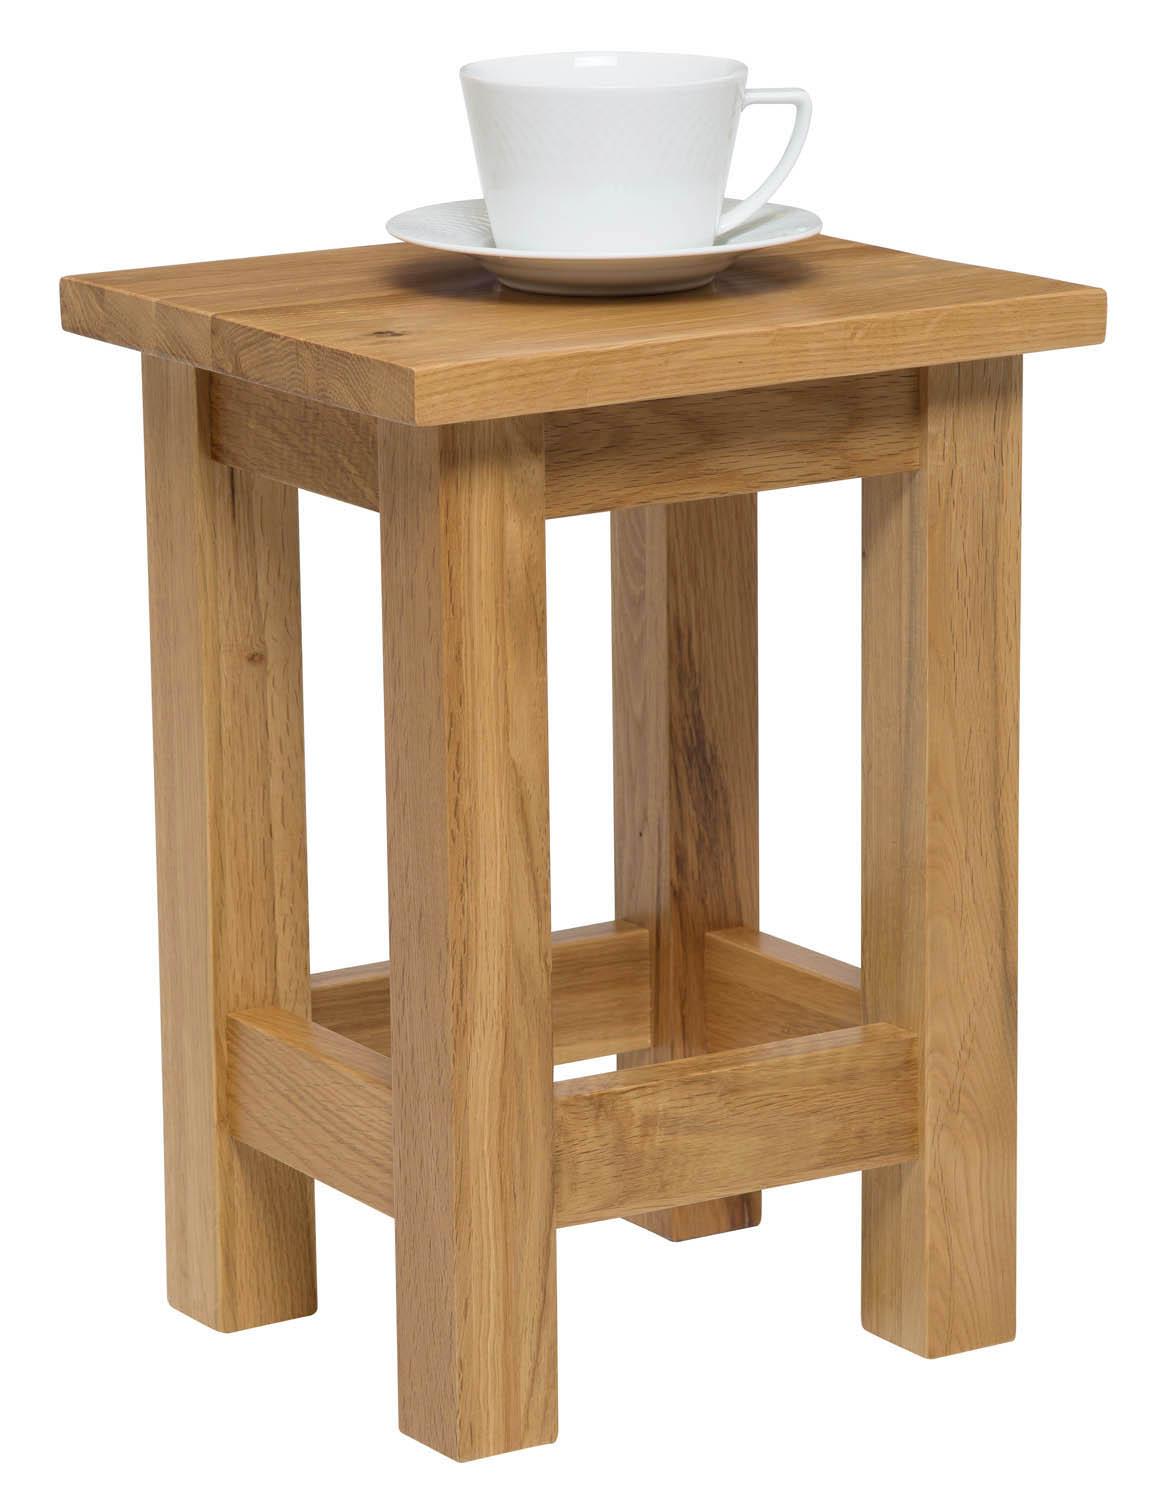 Small oak side table solid wood slim occasional coffee